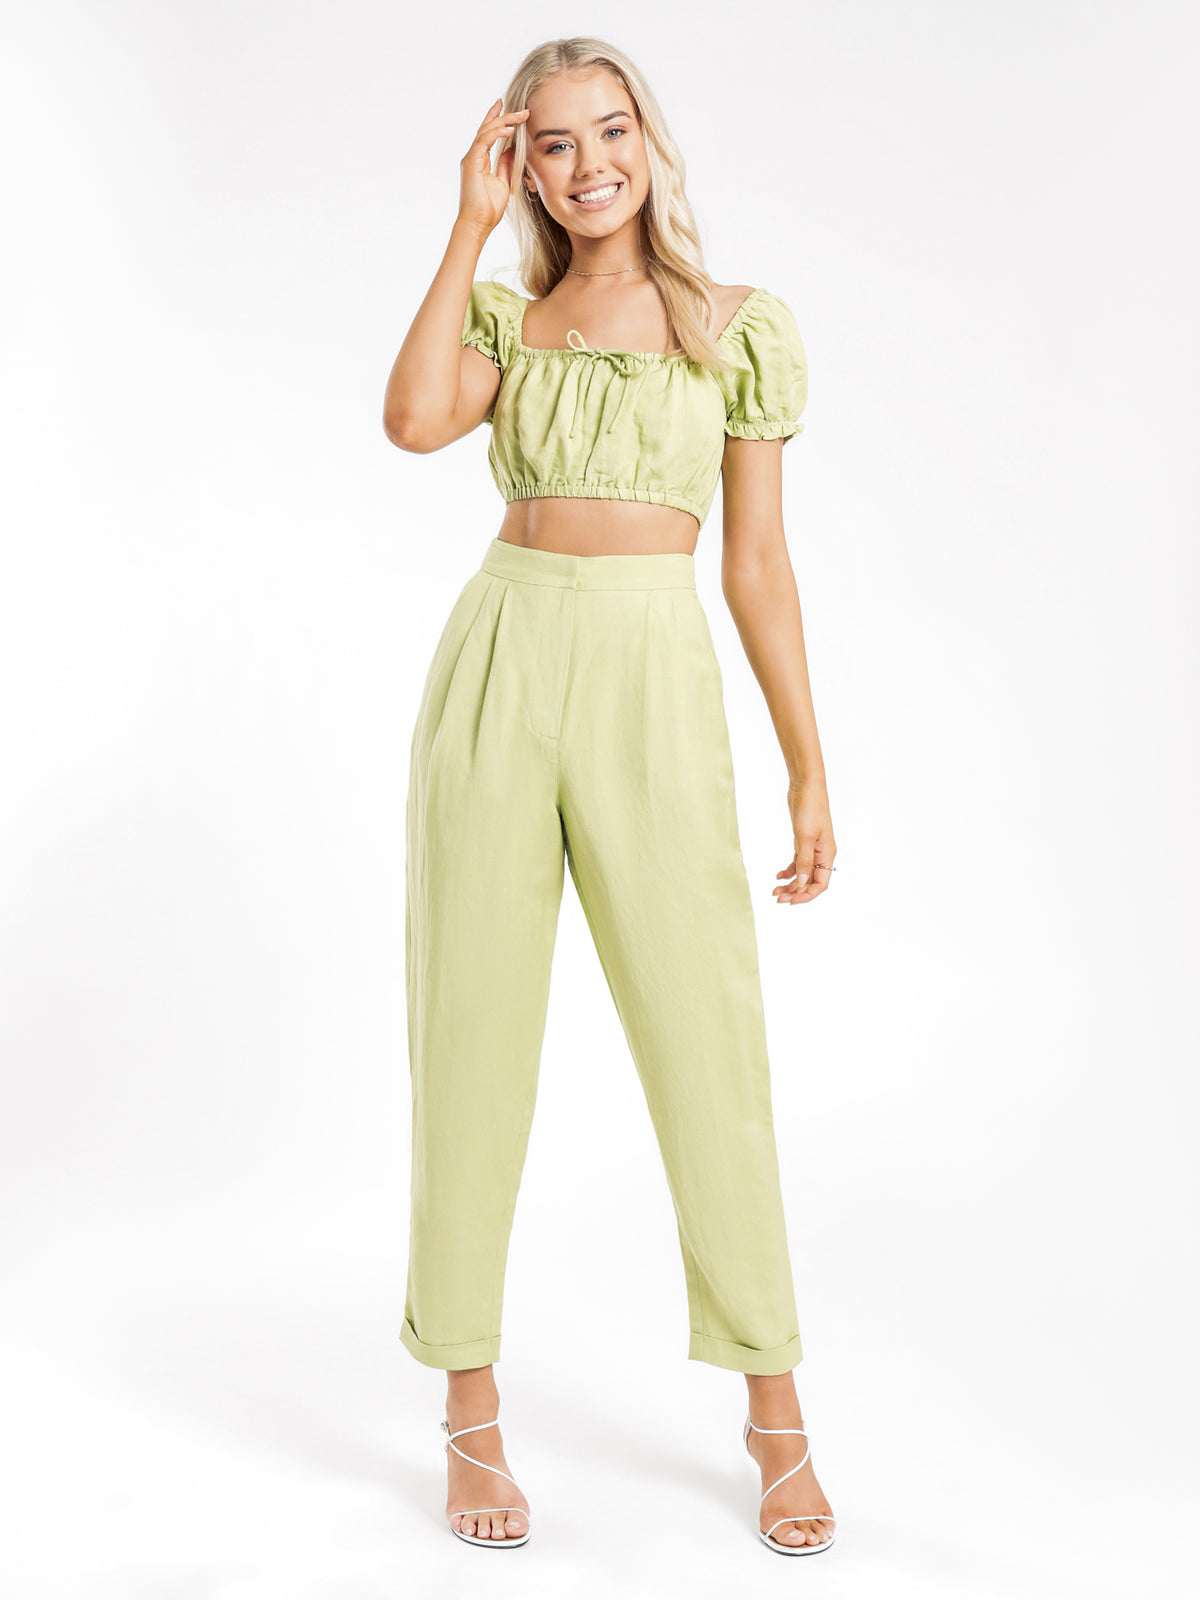 Solange Linen Pants in Pear